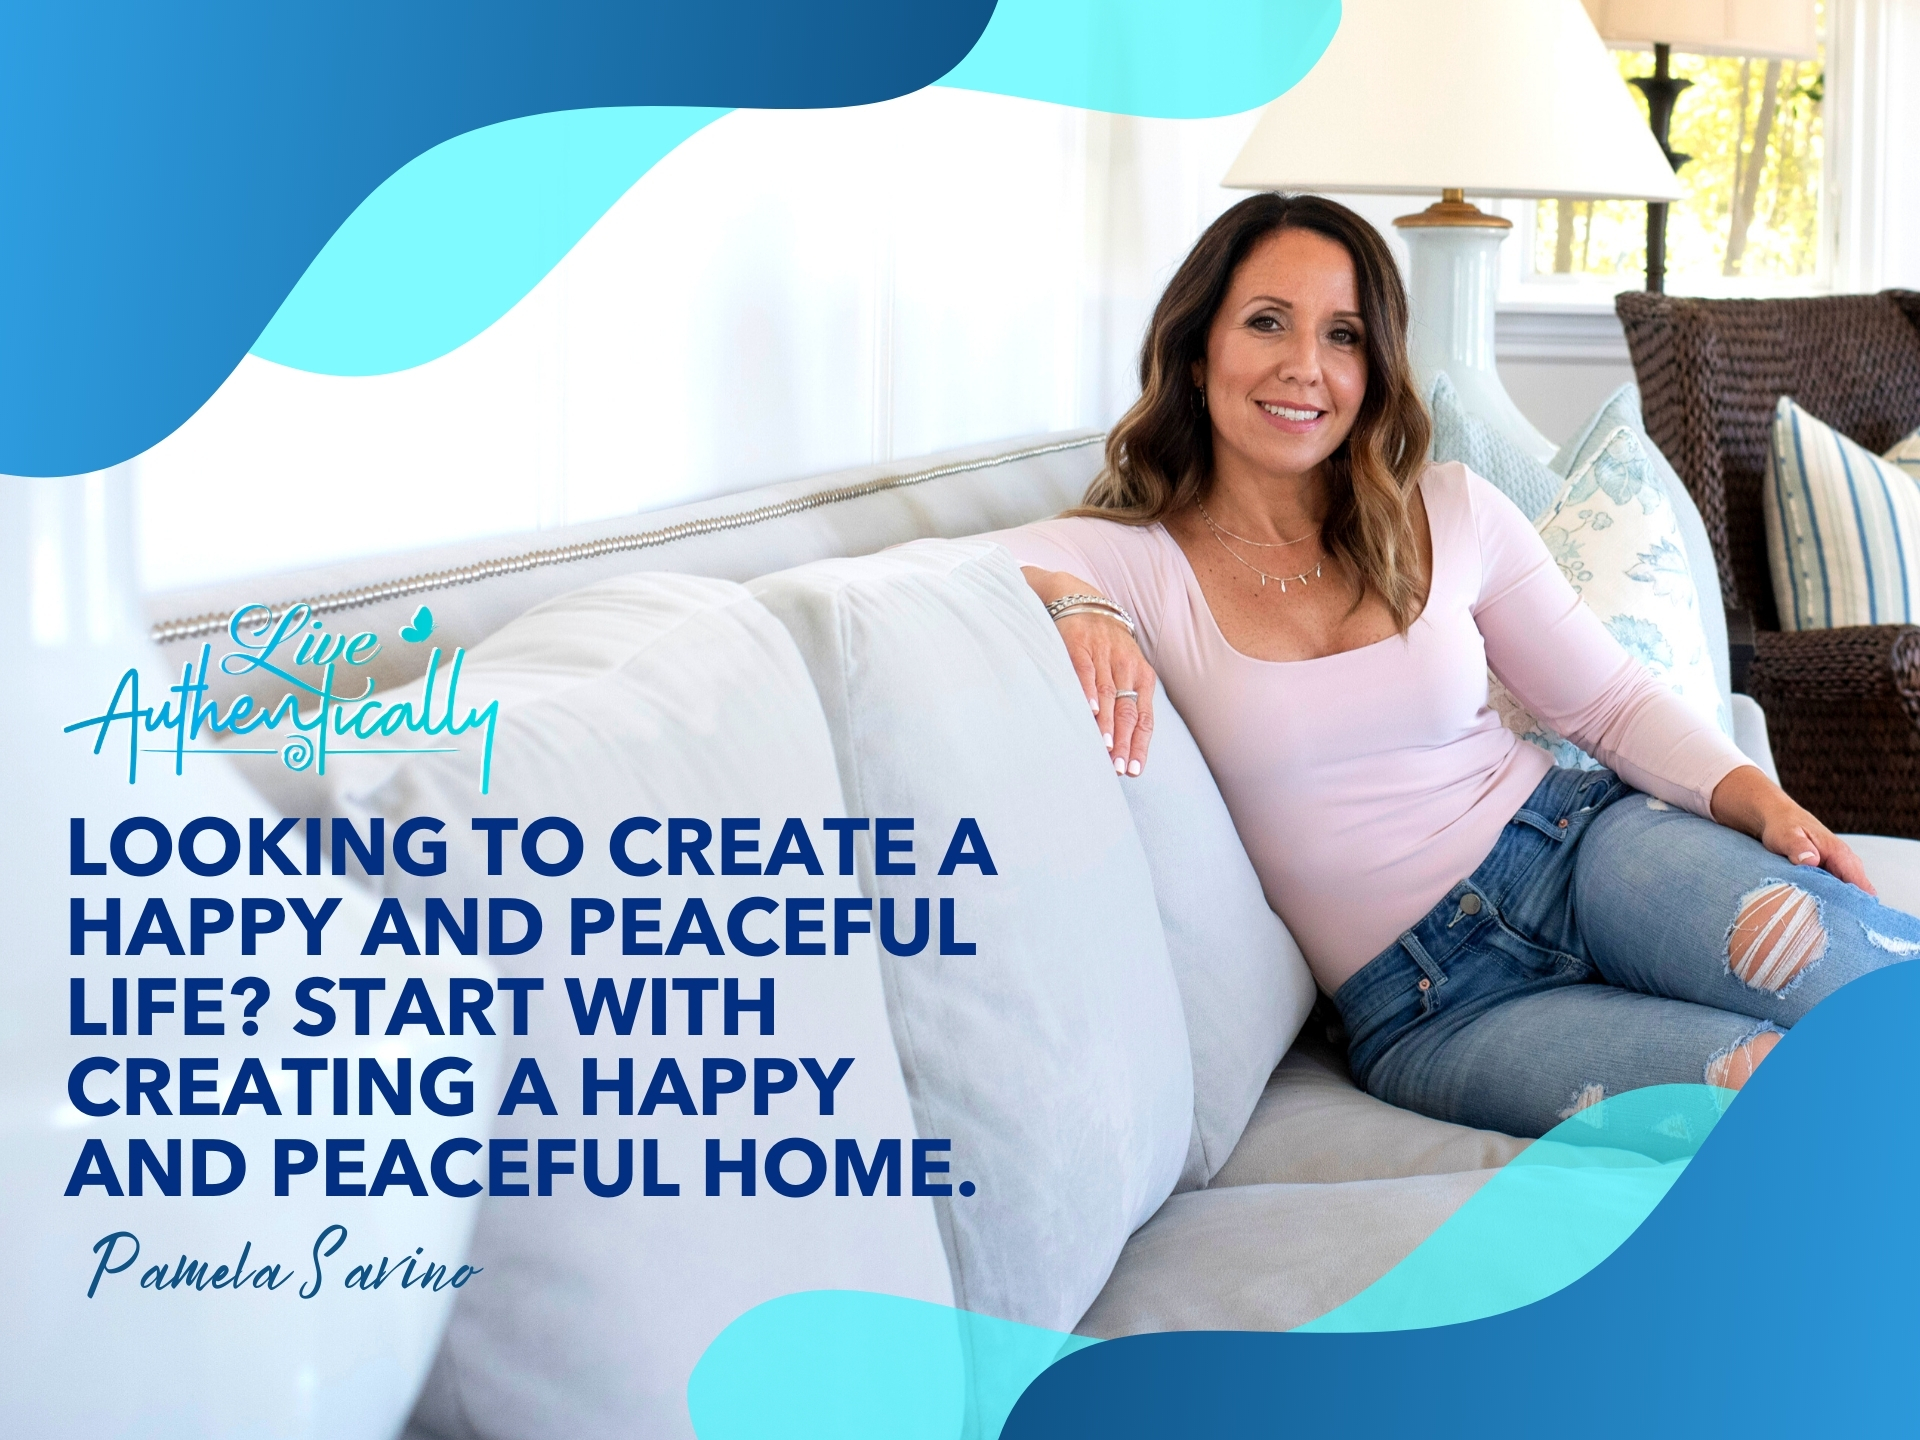 8 Ways to Make Your Home Happy and Peaceful